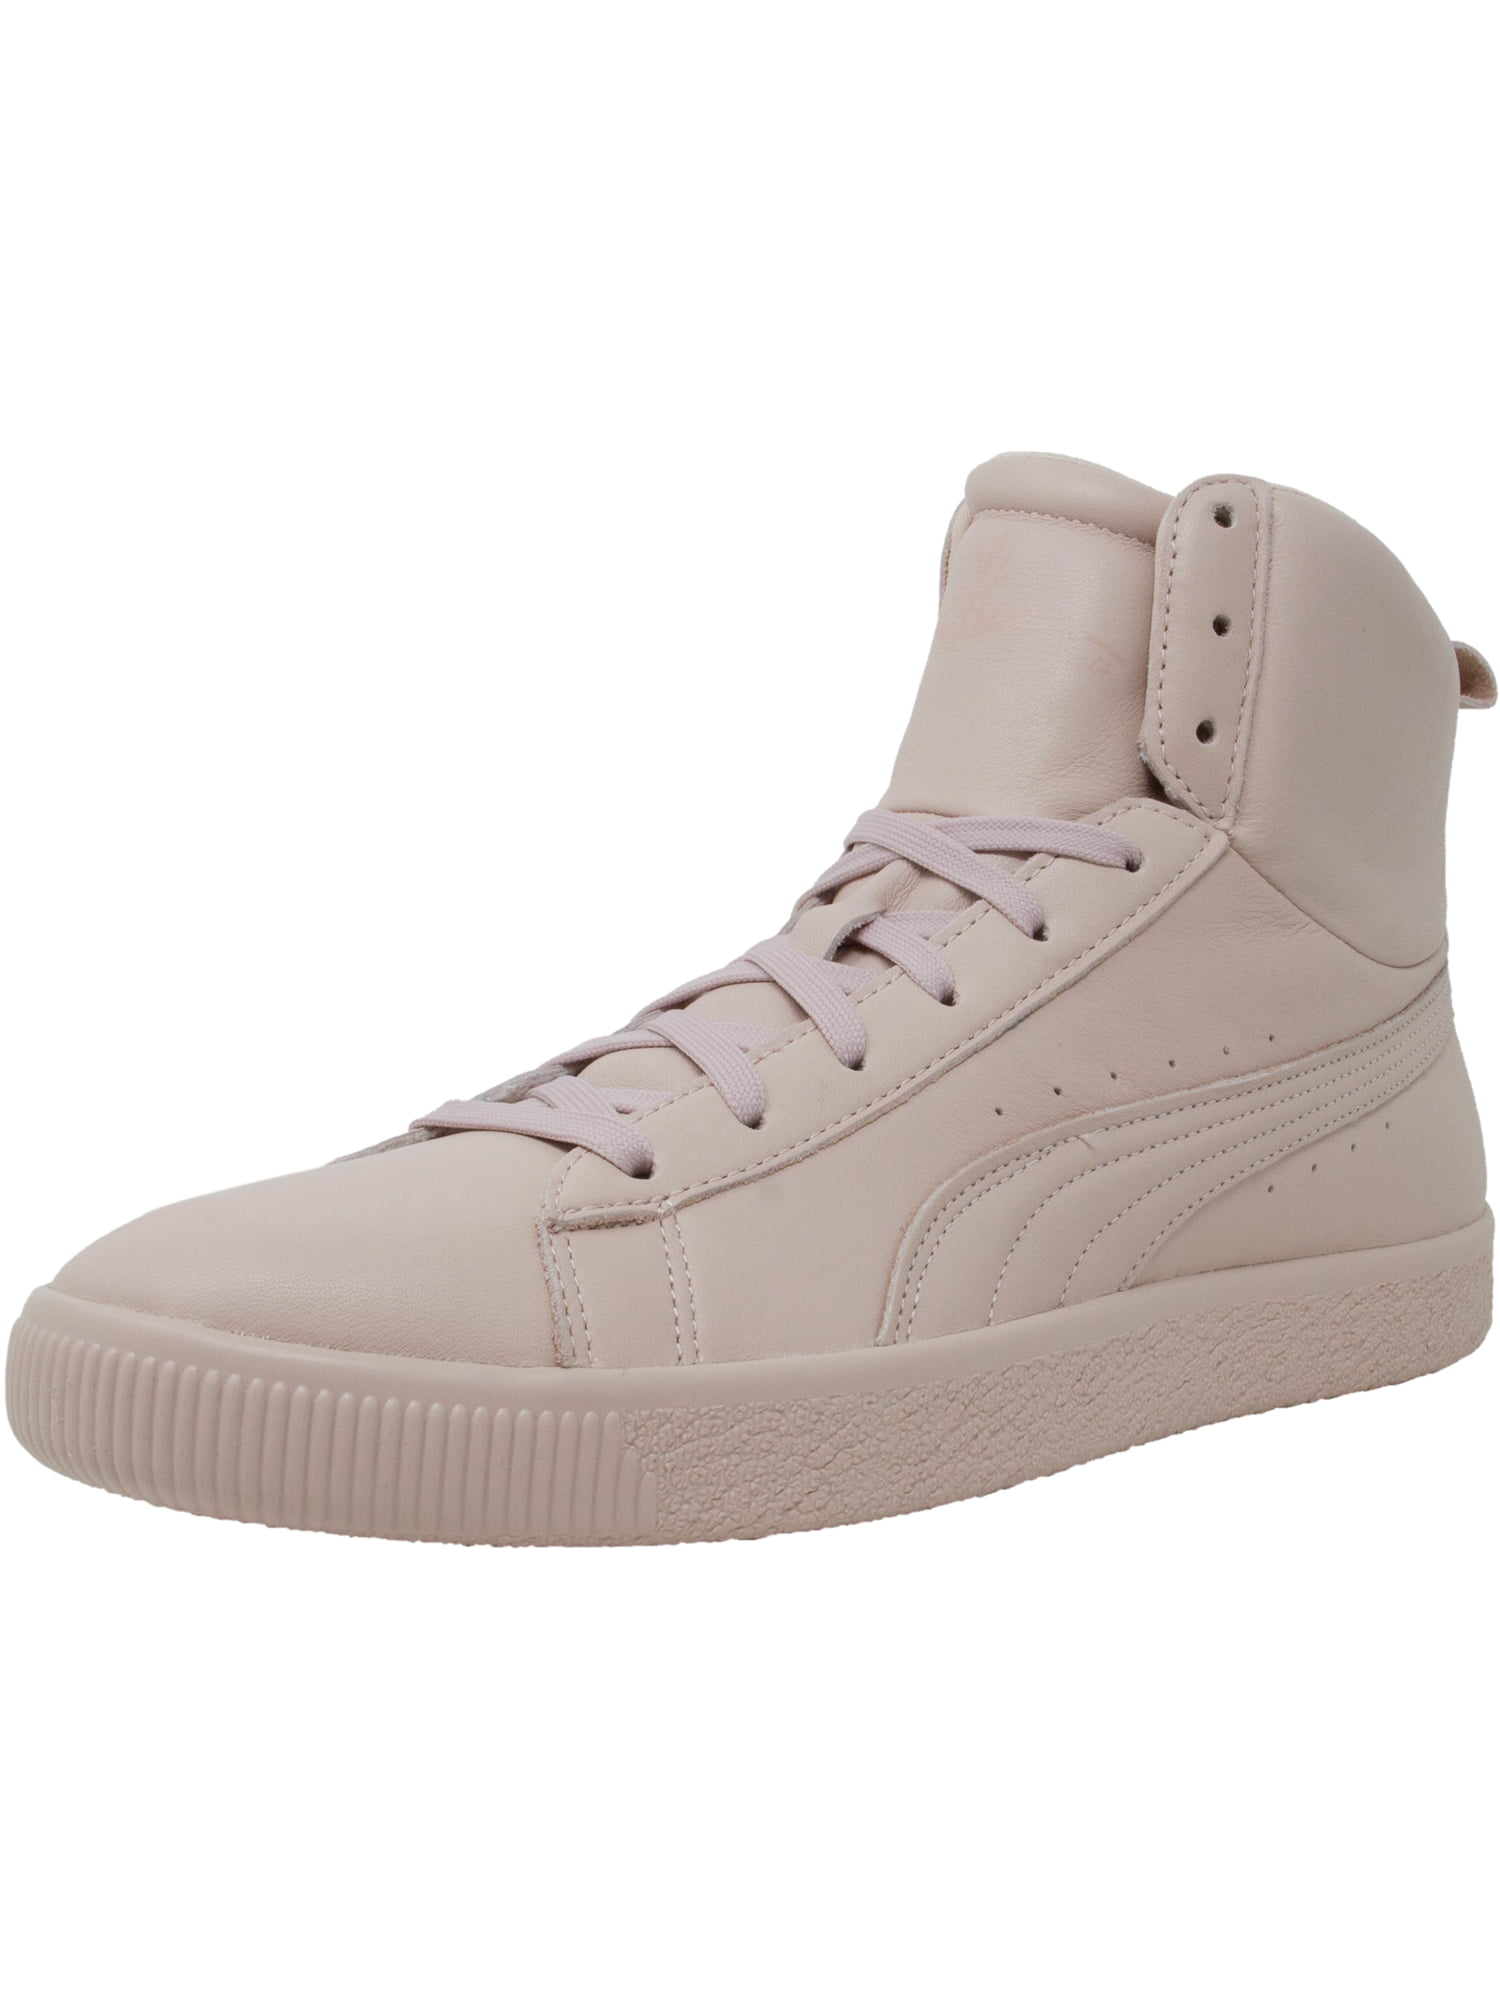 PUMA - Puma Men s Clyde Mid Y And R Rose Smoke Ankle-High Leather Fashion  Sneaker - 8M - Walmart.com 3c43cb07f